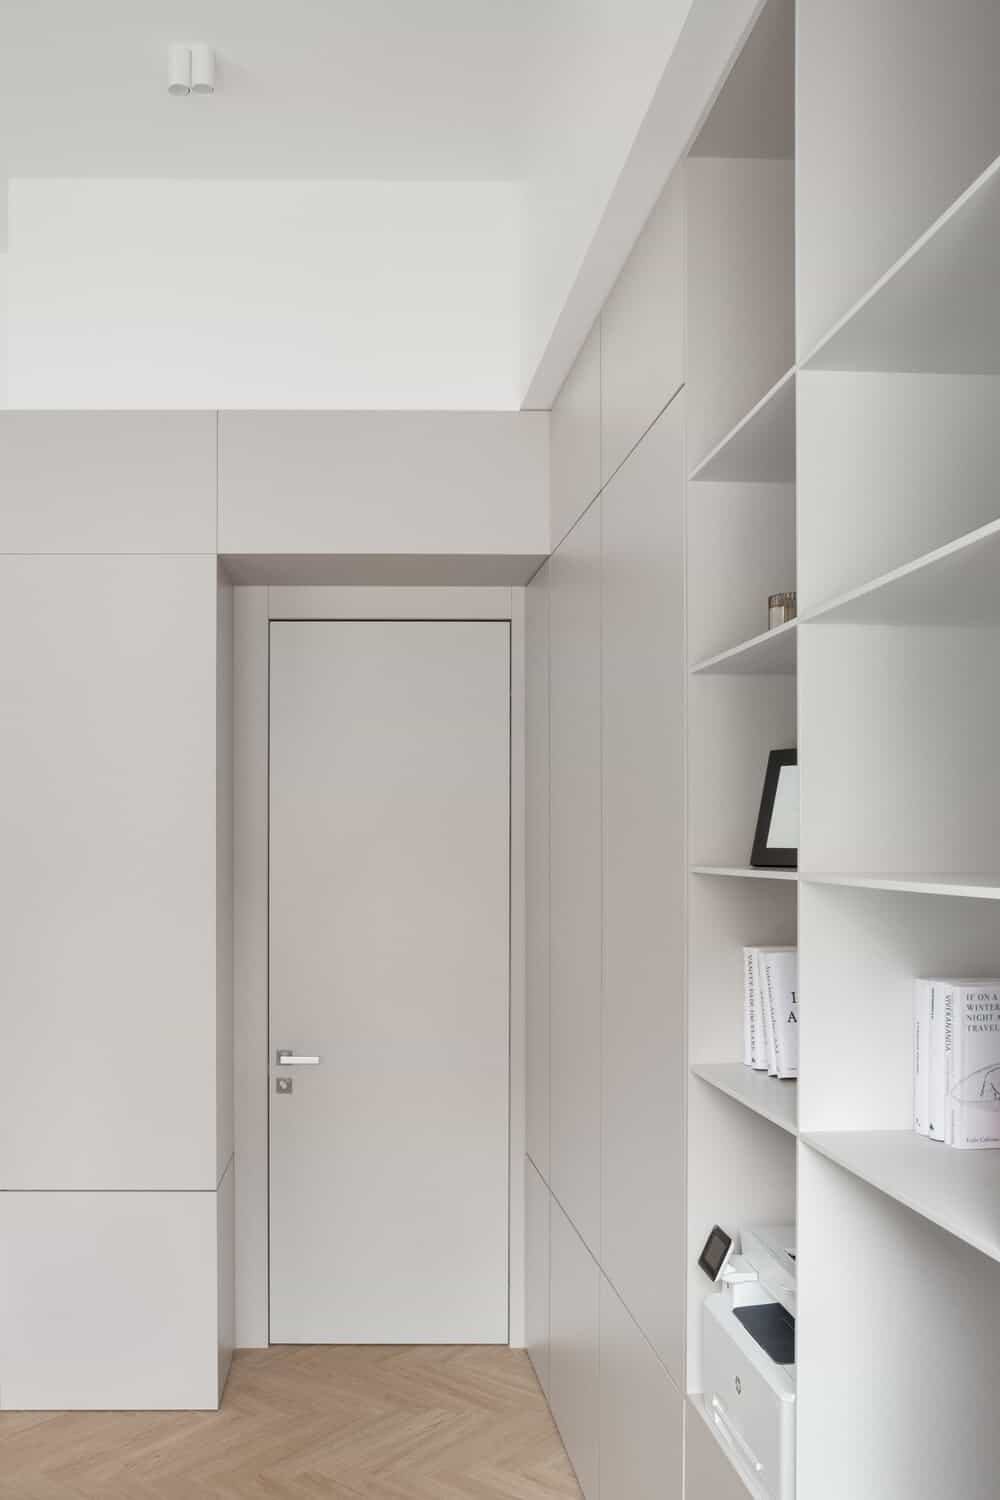 This is a look at the large office with built-in light beige shelves and a door on the far side with the same tone as the walls.